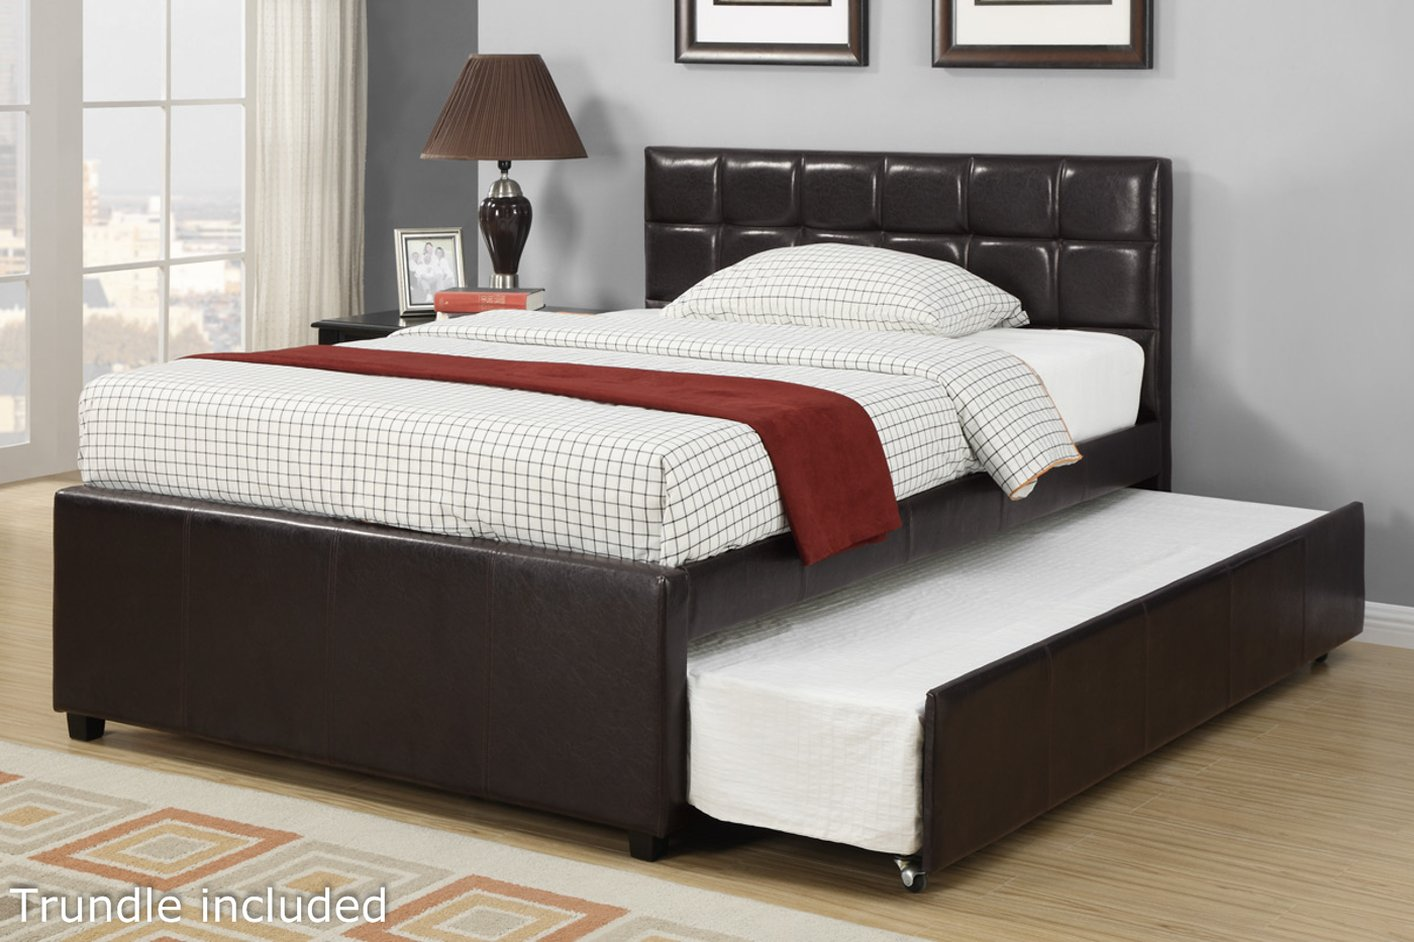 Poundex F9215F Full Size Bed with Trundle in Los Angeles CA : full size bed with trundle 61 from www.stealasofa.com size 1414 x 942 jpeg 207kB